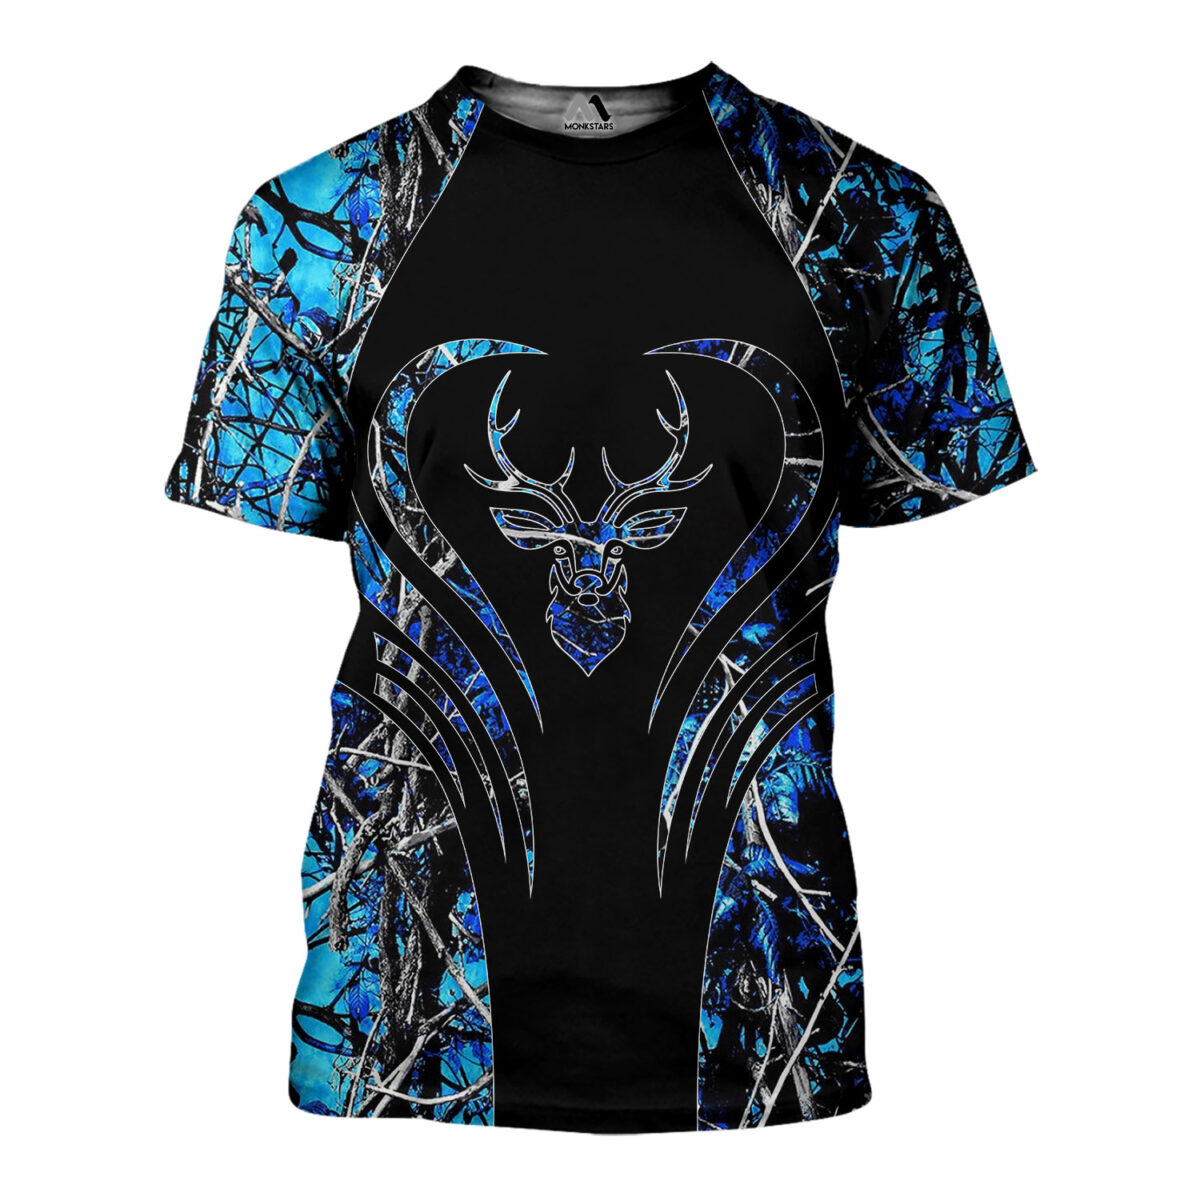 Deer Hunting Camo 3D All Over Printed Shirts for Men and Women 11